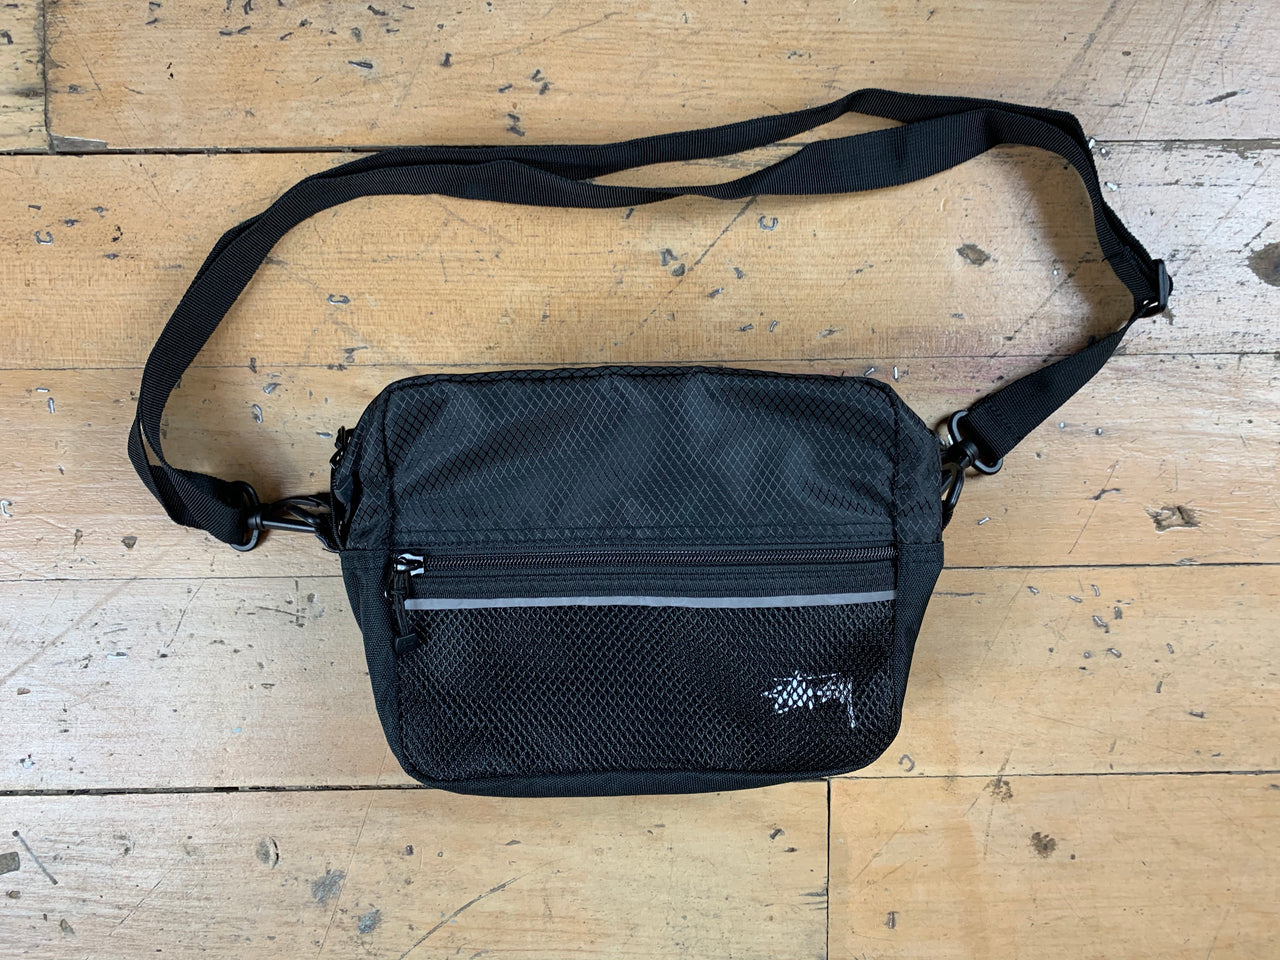 Stock Ripstop Shoulder Bag - Black